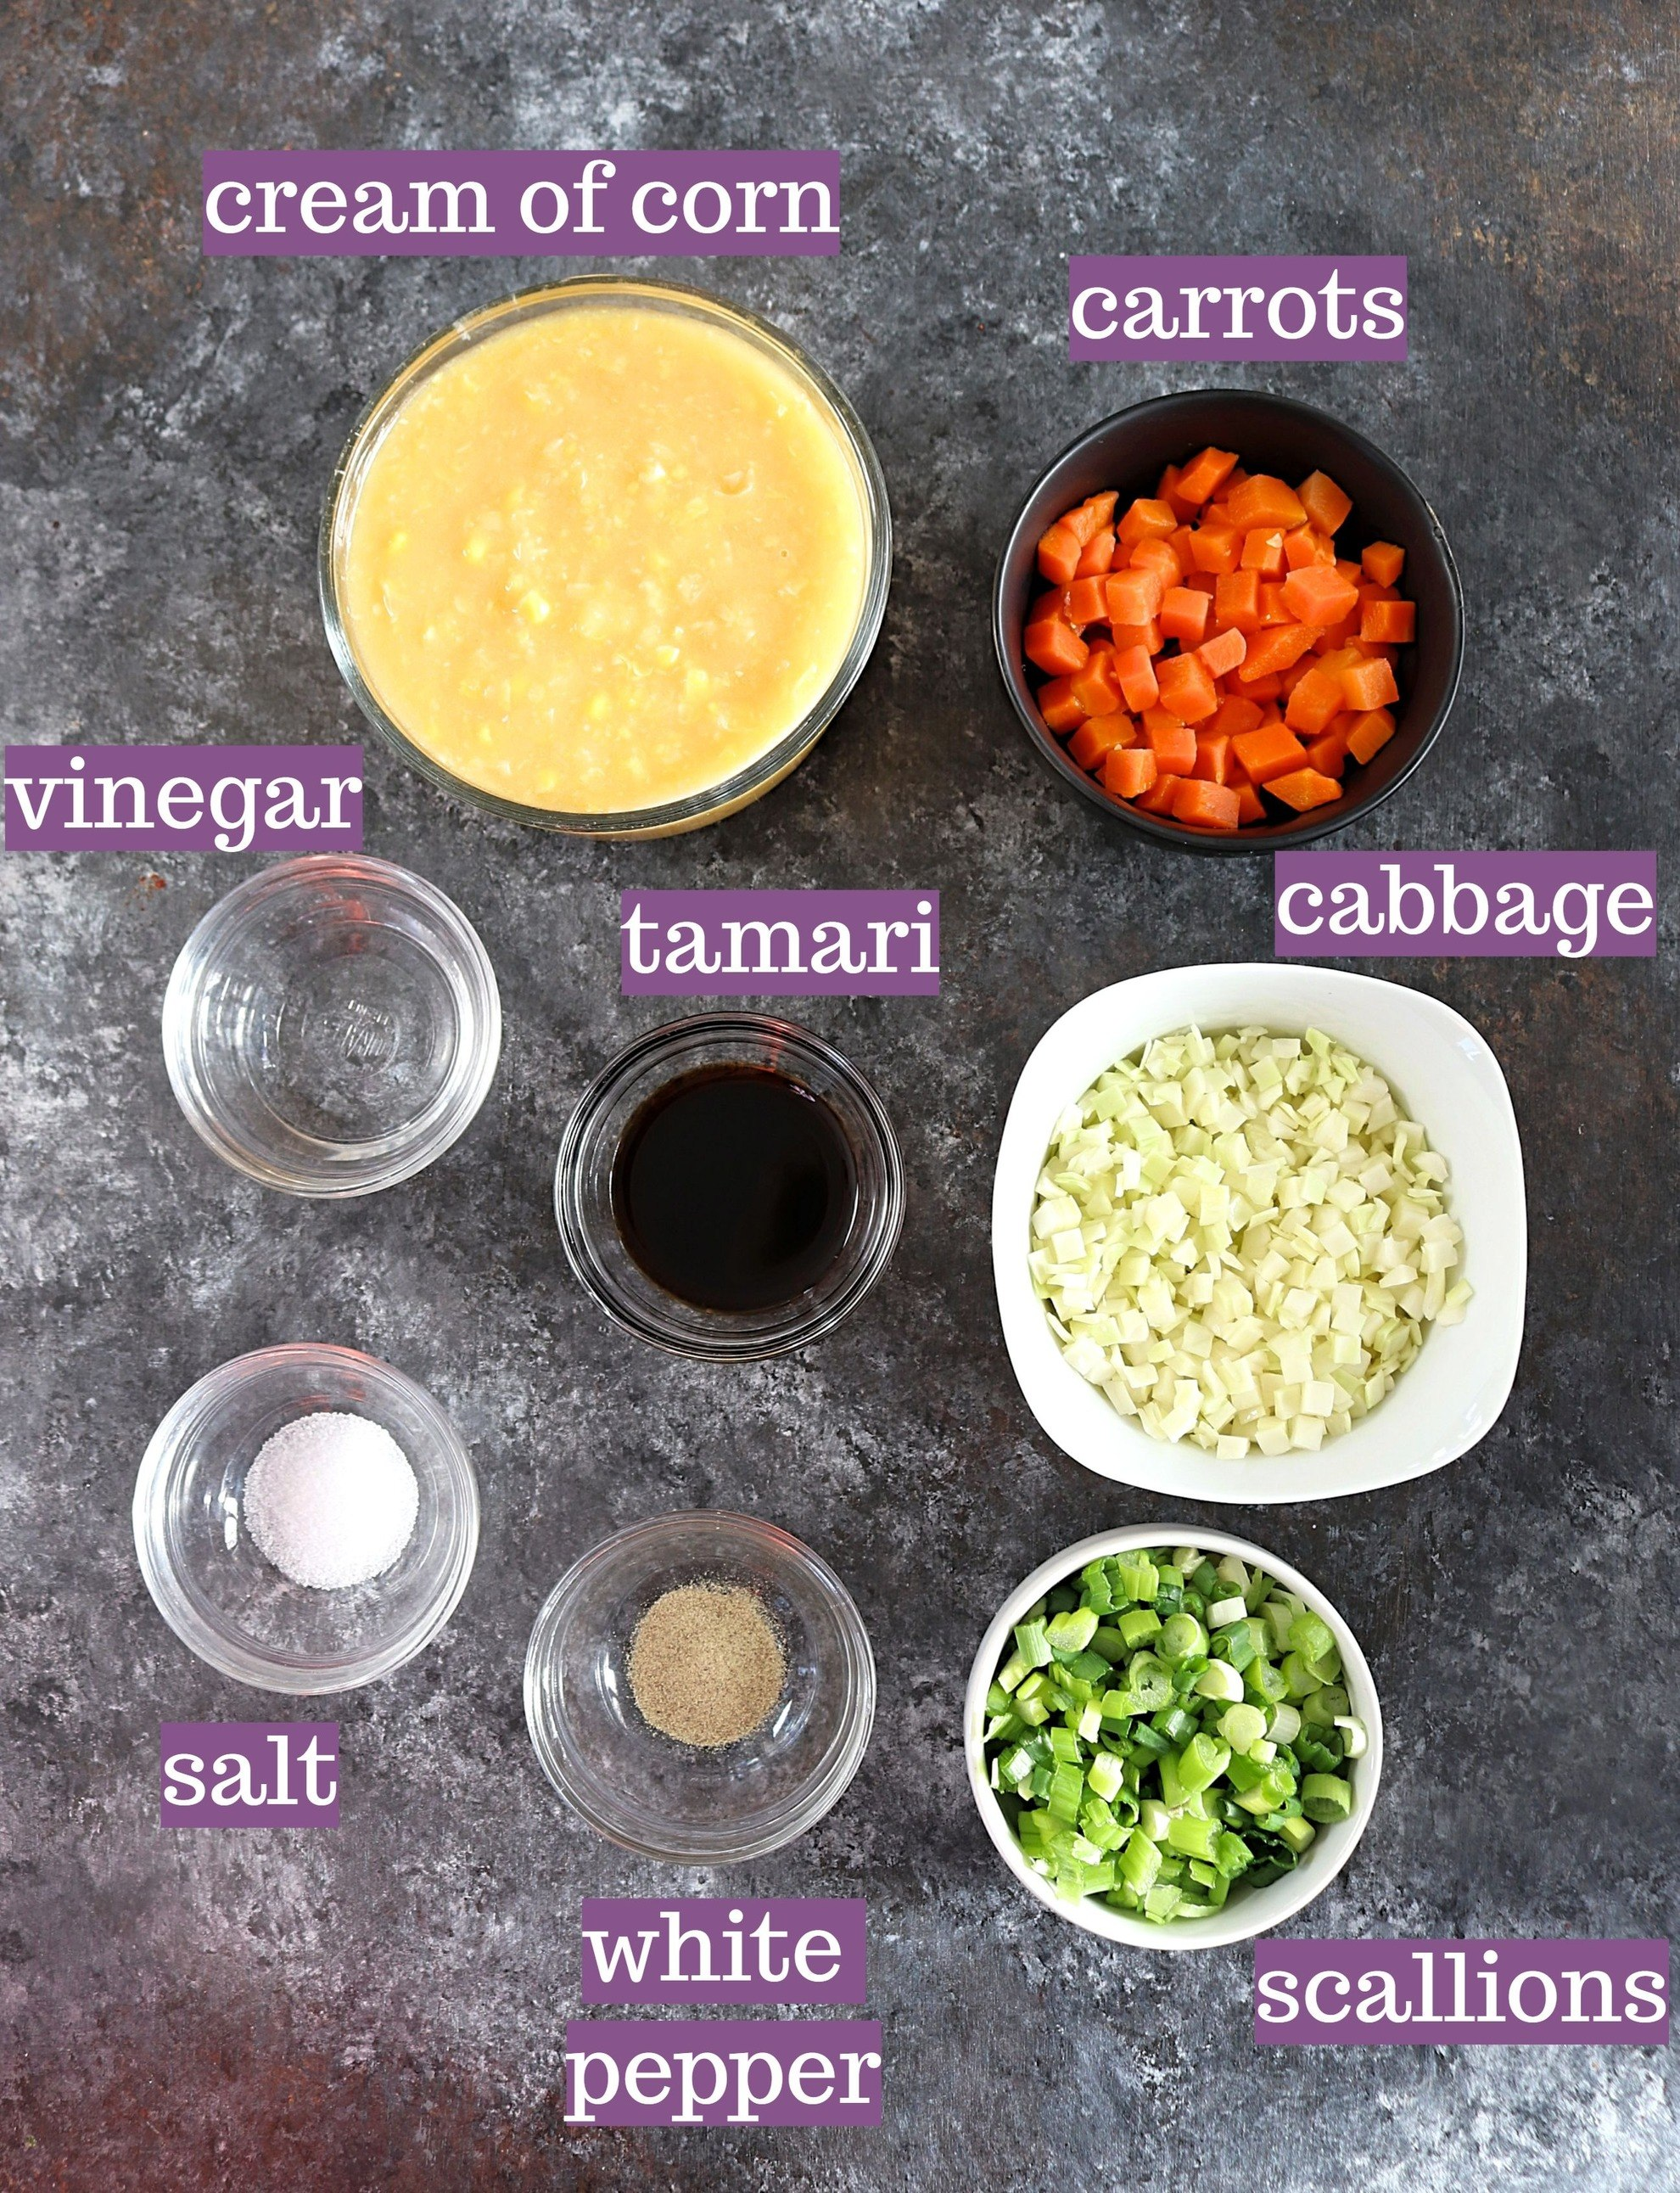 Ingredients that make up the soup